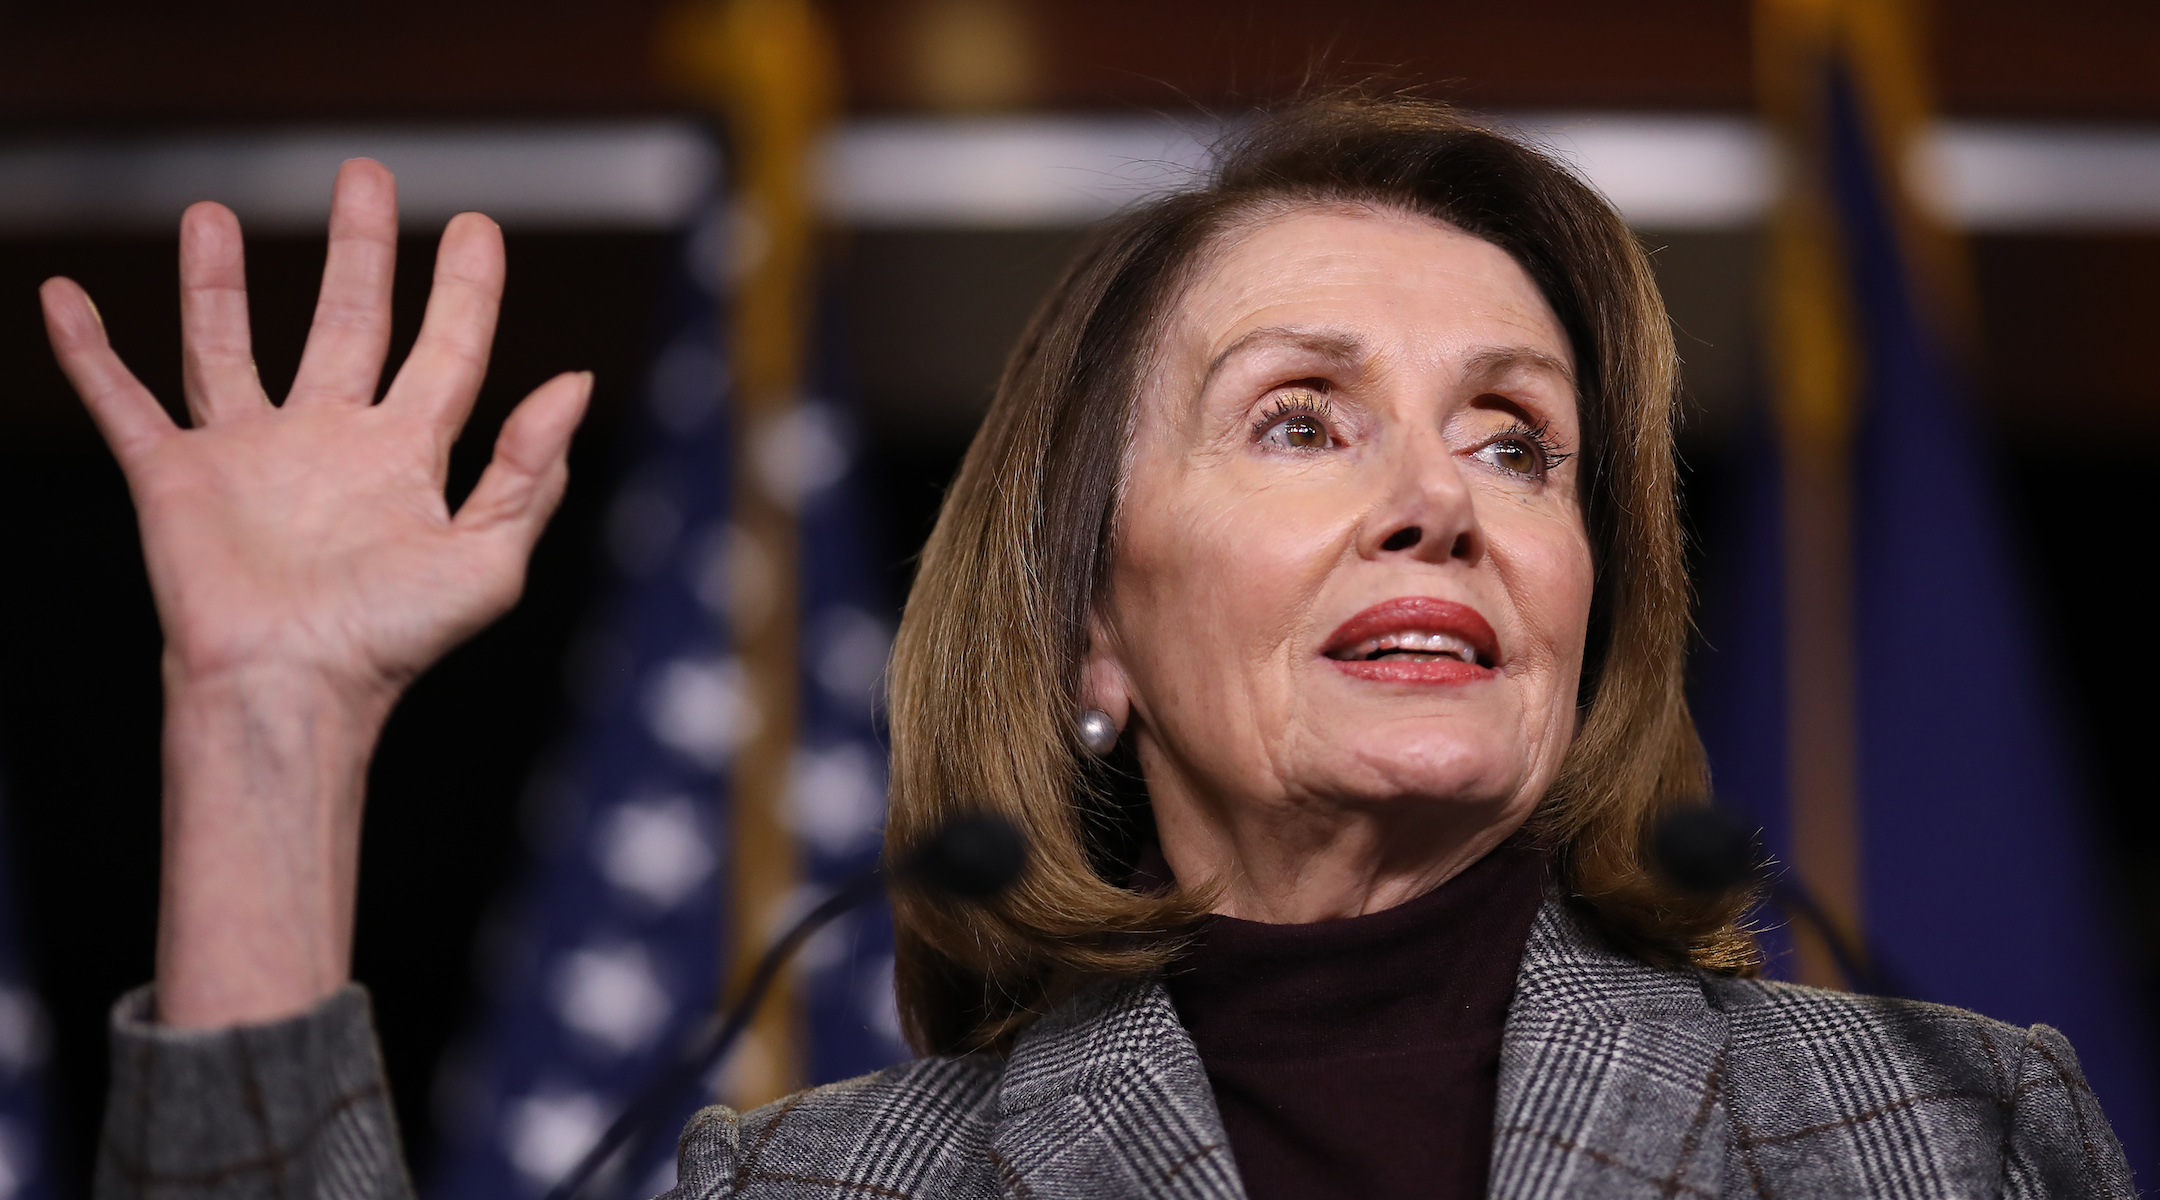 Nancy Pelosi at her weekly news conference at the Capitol, Feb. 28, 2019 (Photo/JTA-Win McNamee-Getty Images)